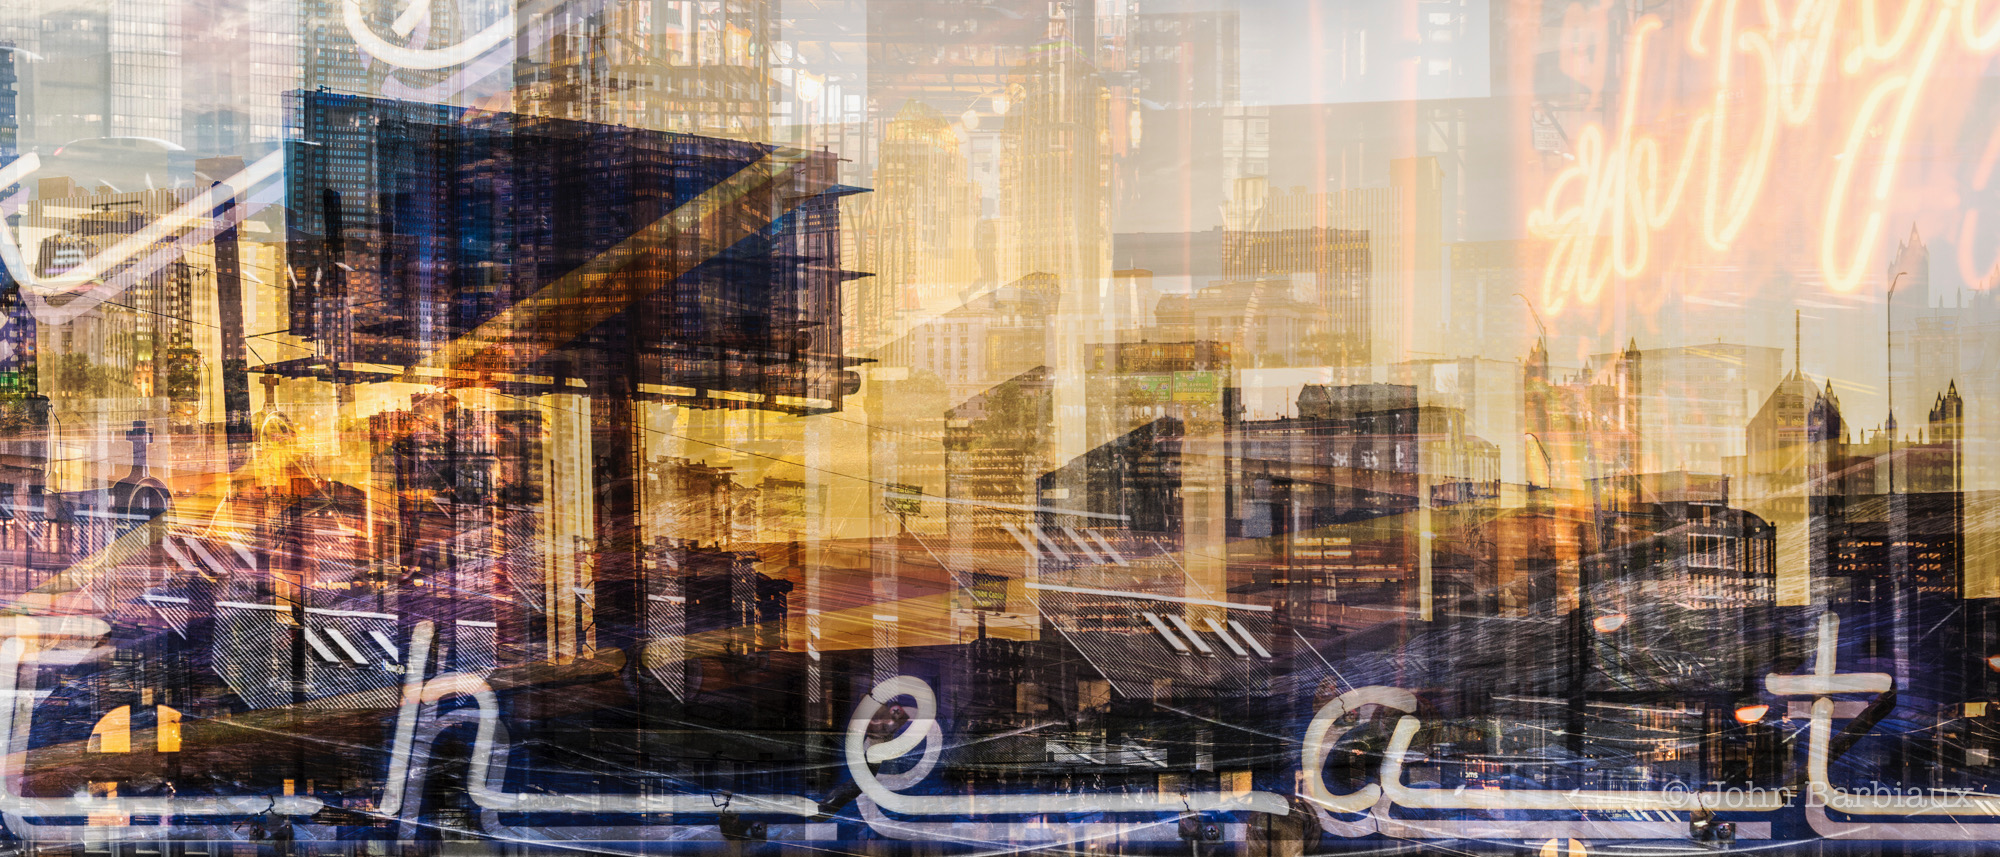 pittsburgh, fine art, abstract, photography, fractal cityscape, street photography, cityscape